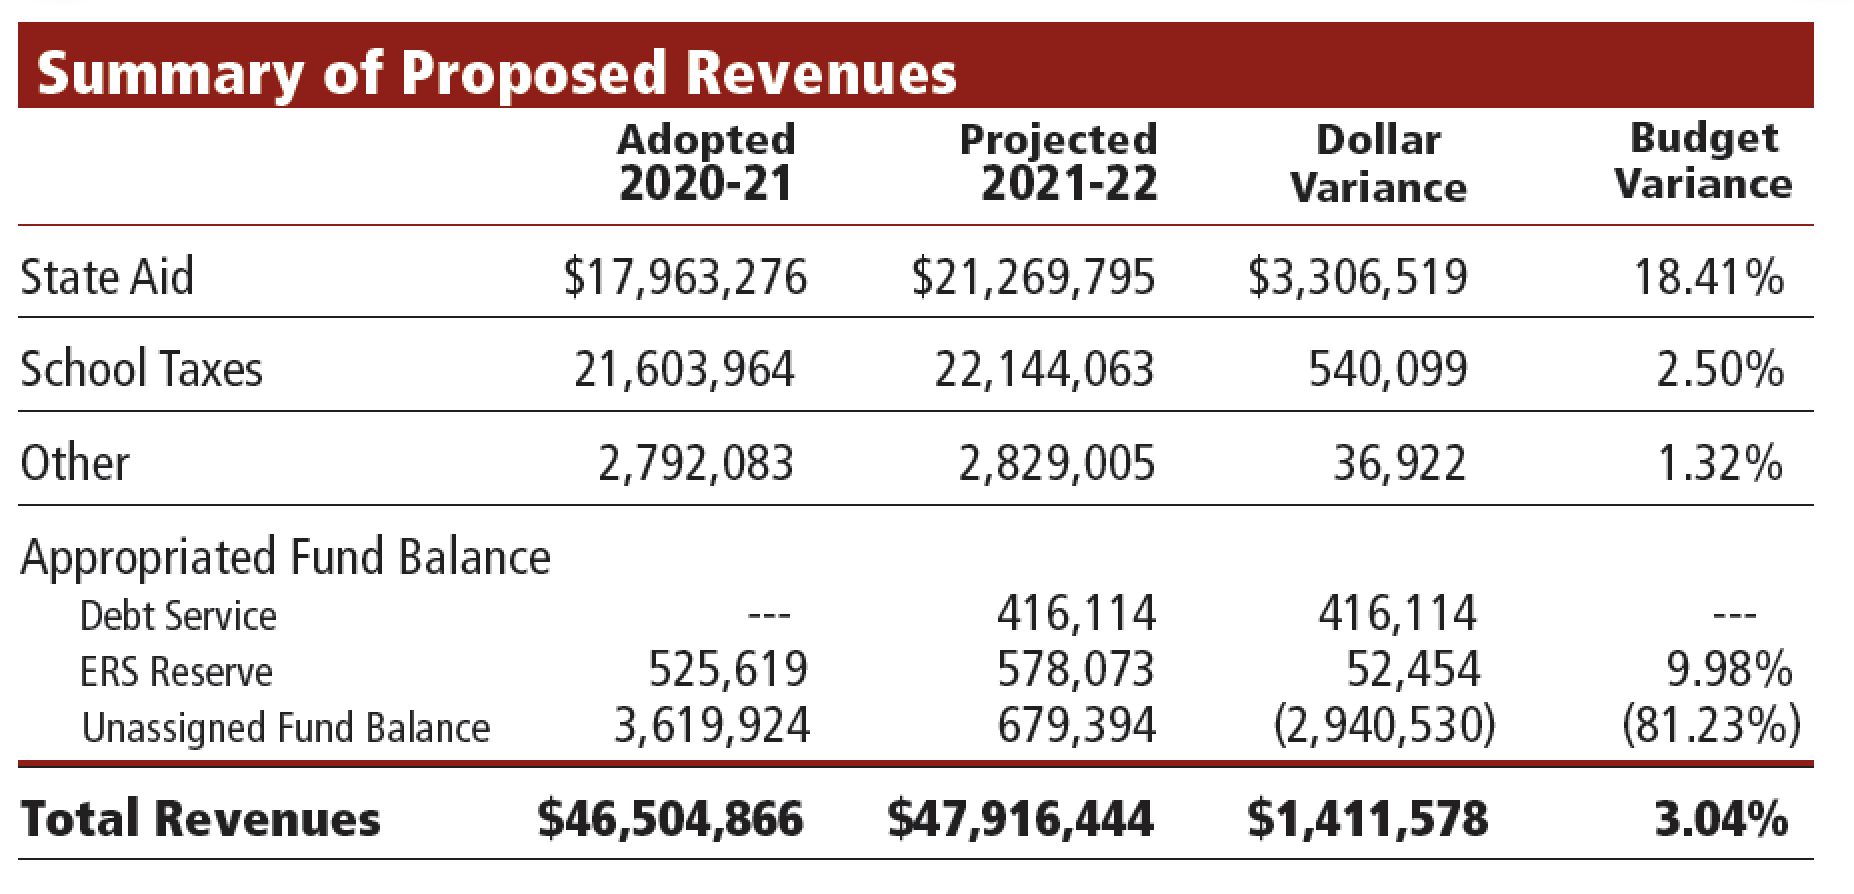 graphic of proposed district revenues for 2021-22